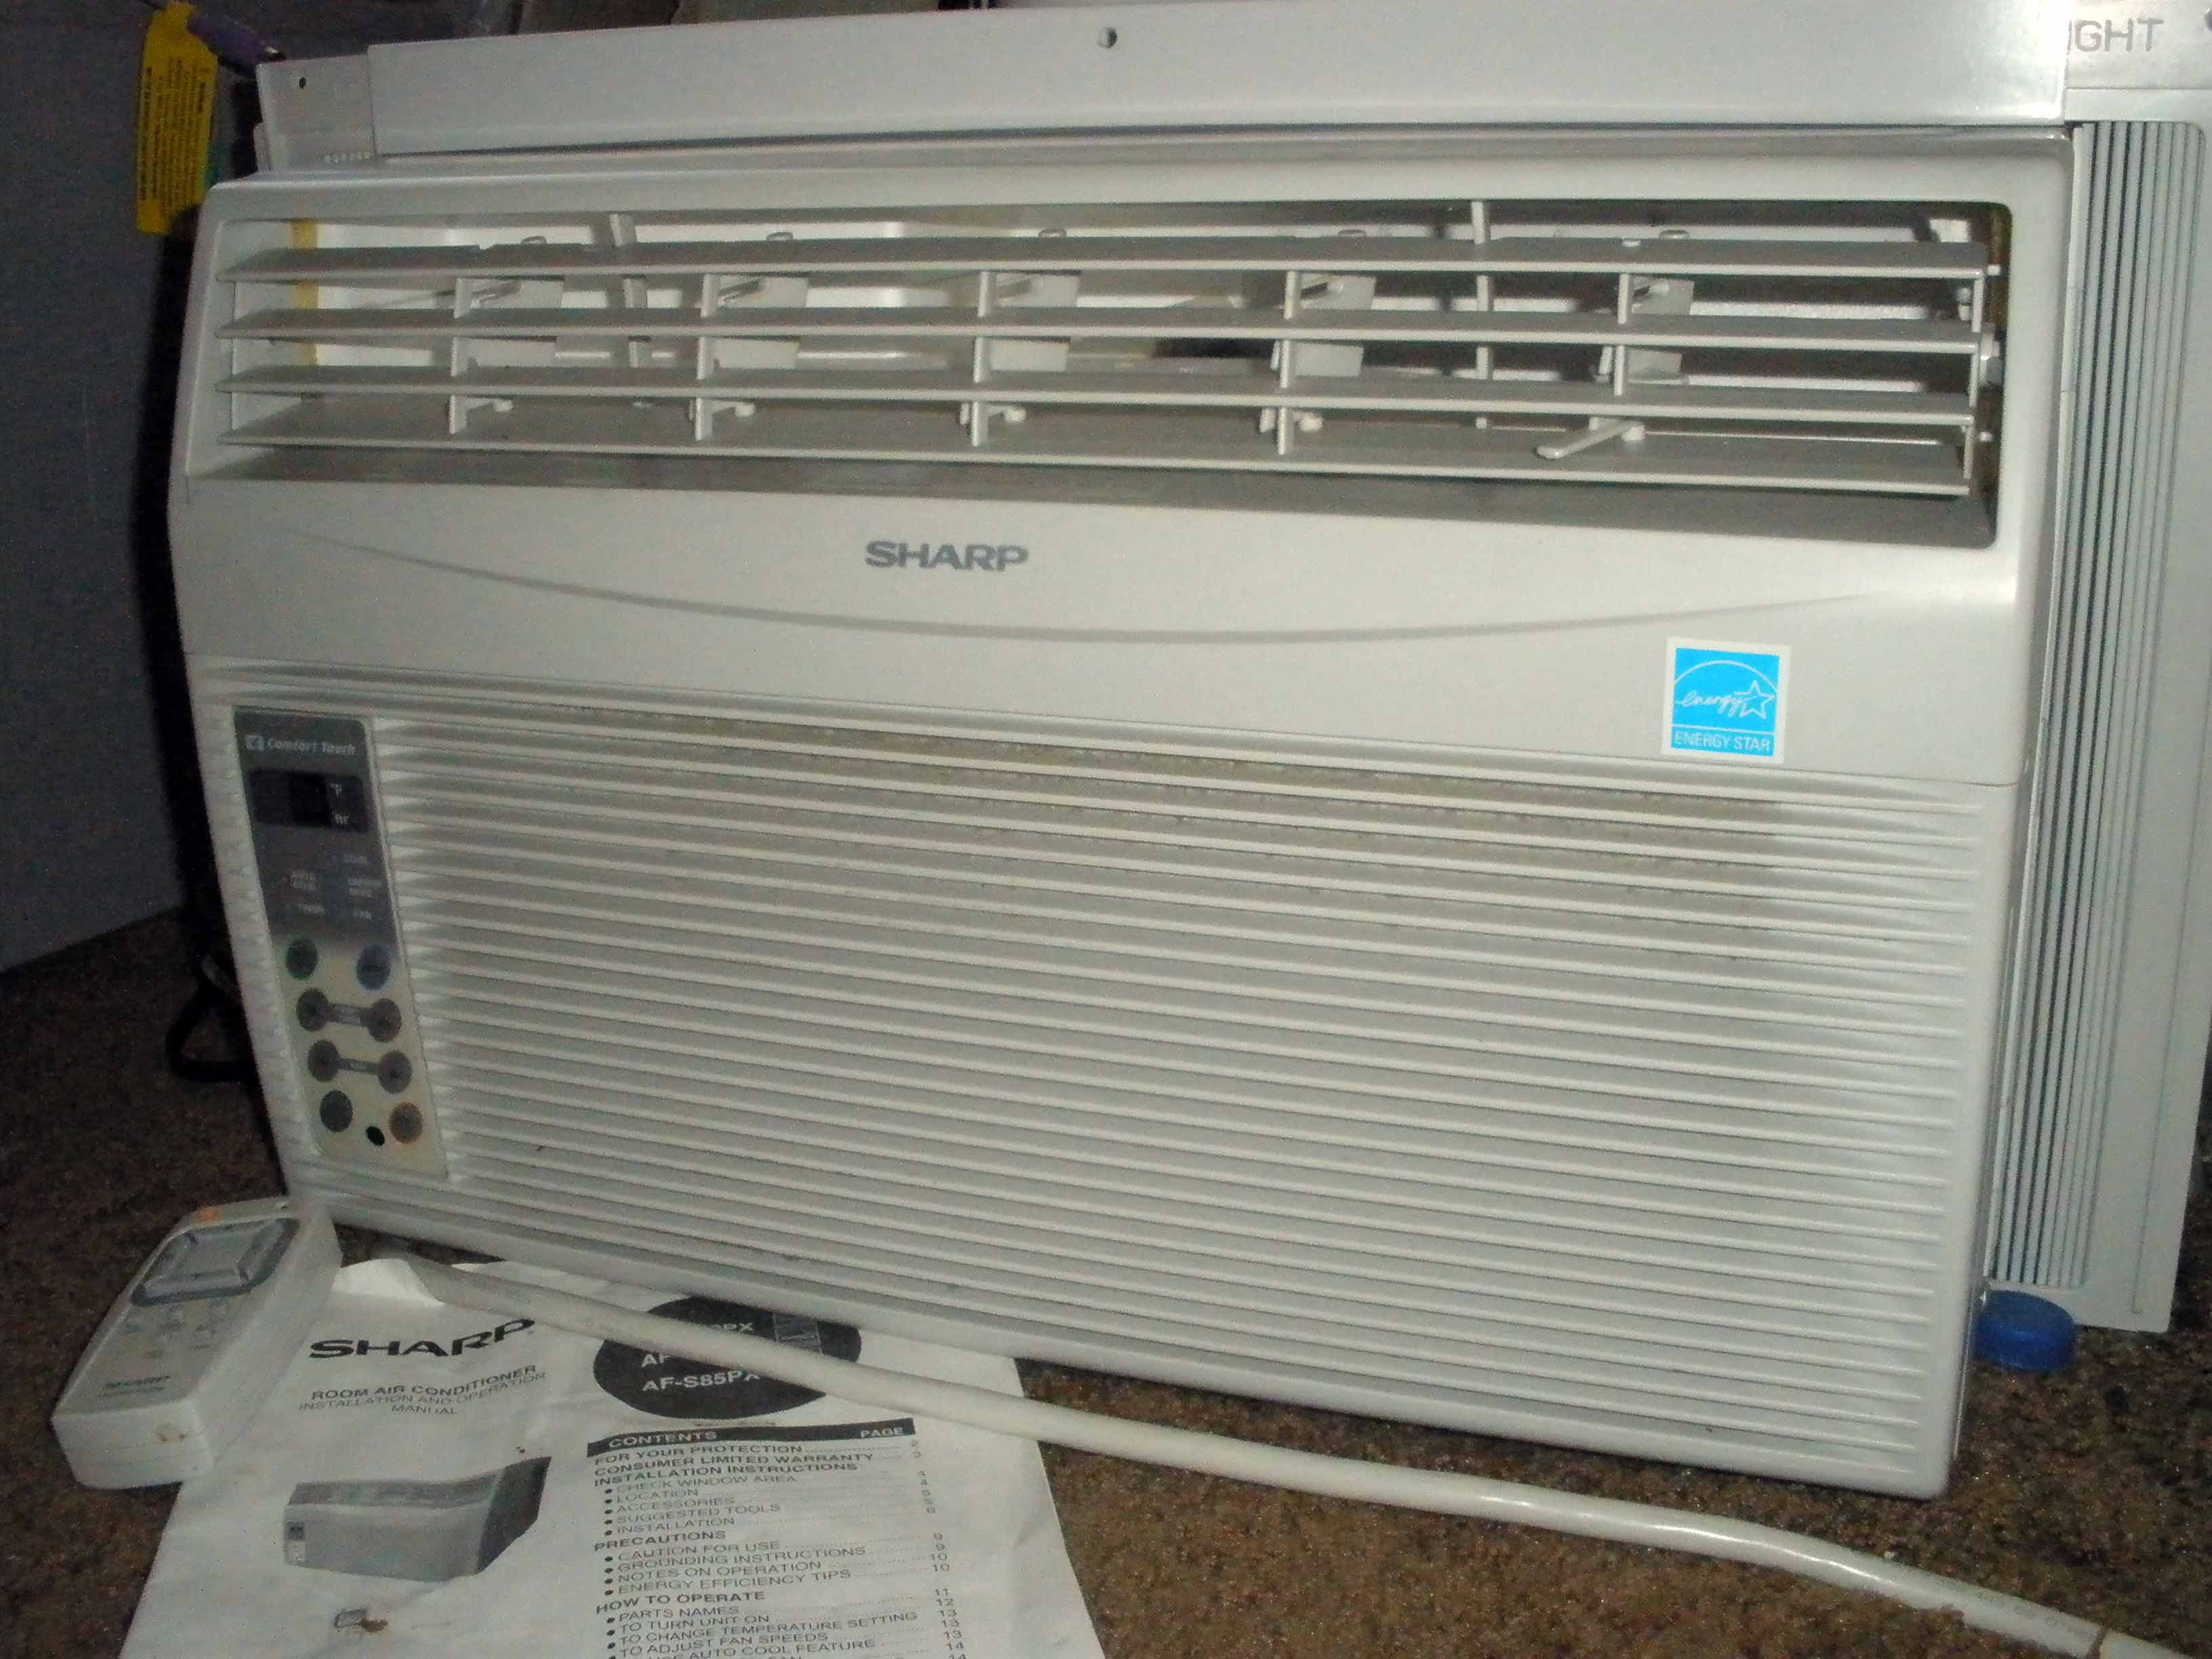 f s 8000 btu sharp apartment air conditioner scion xb forum